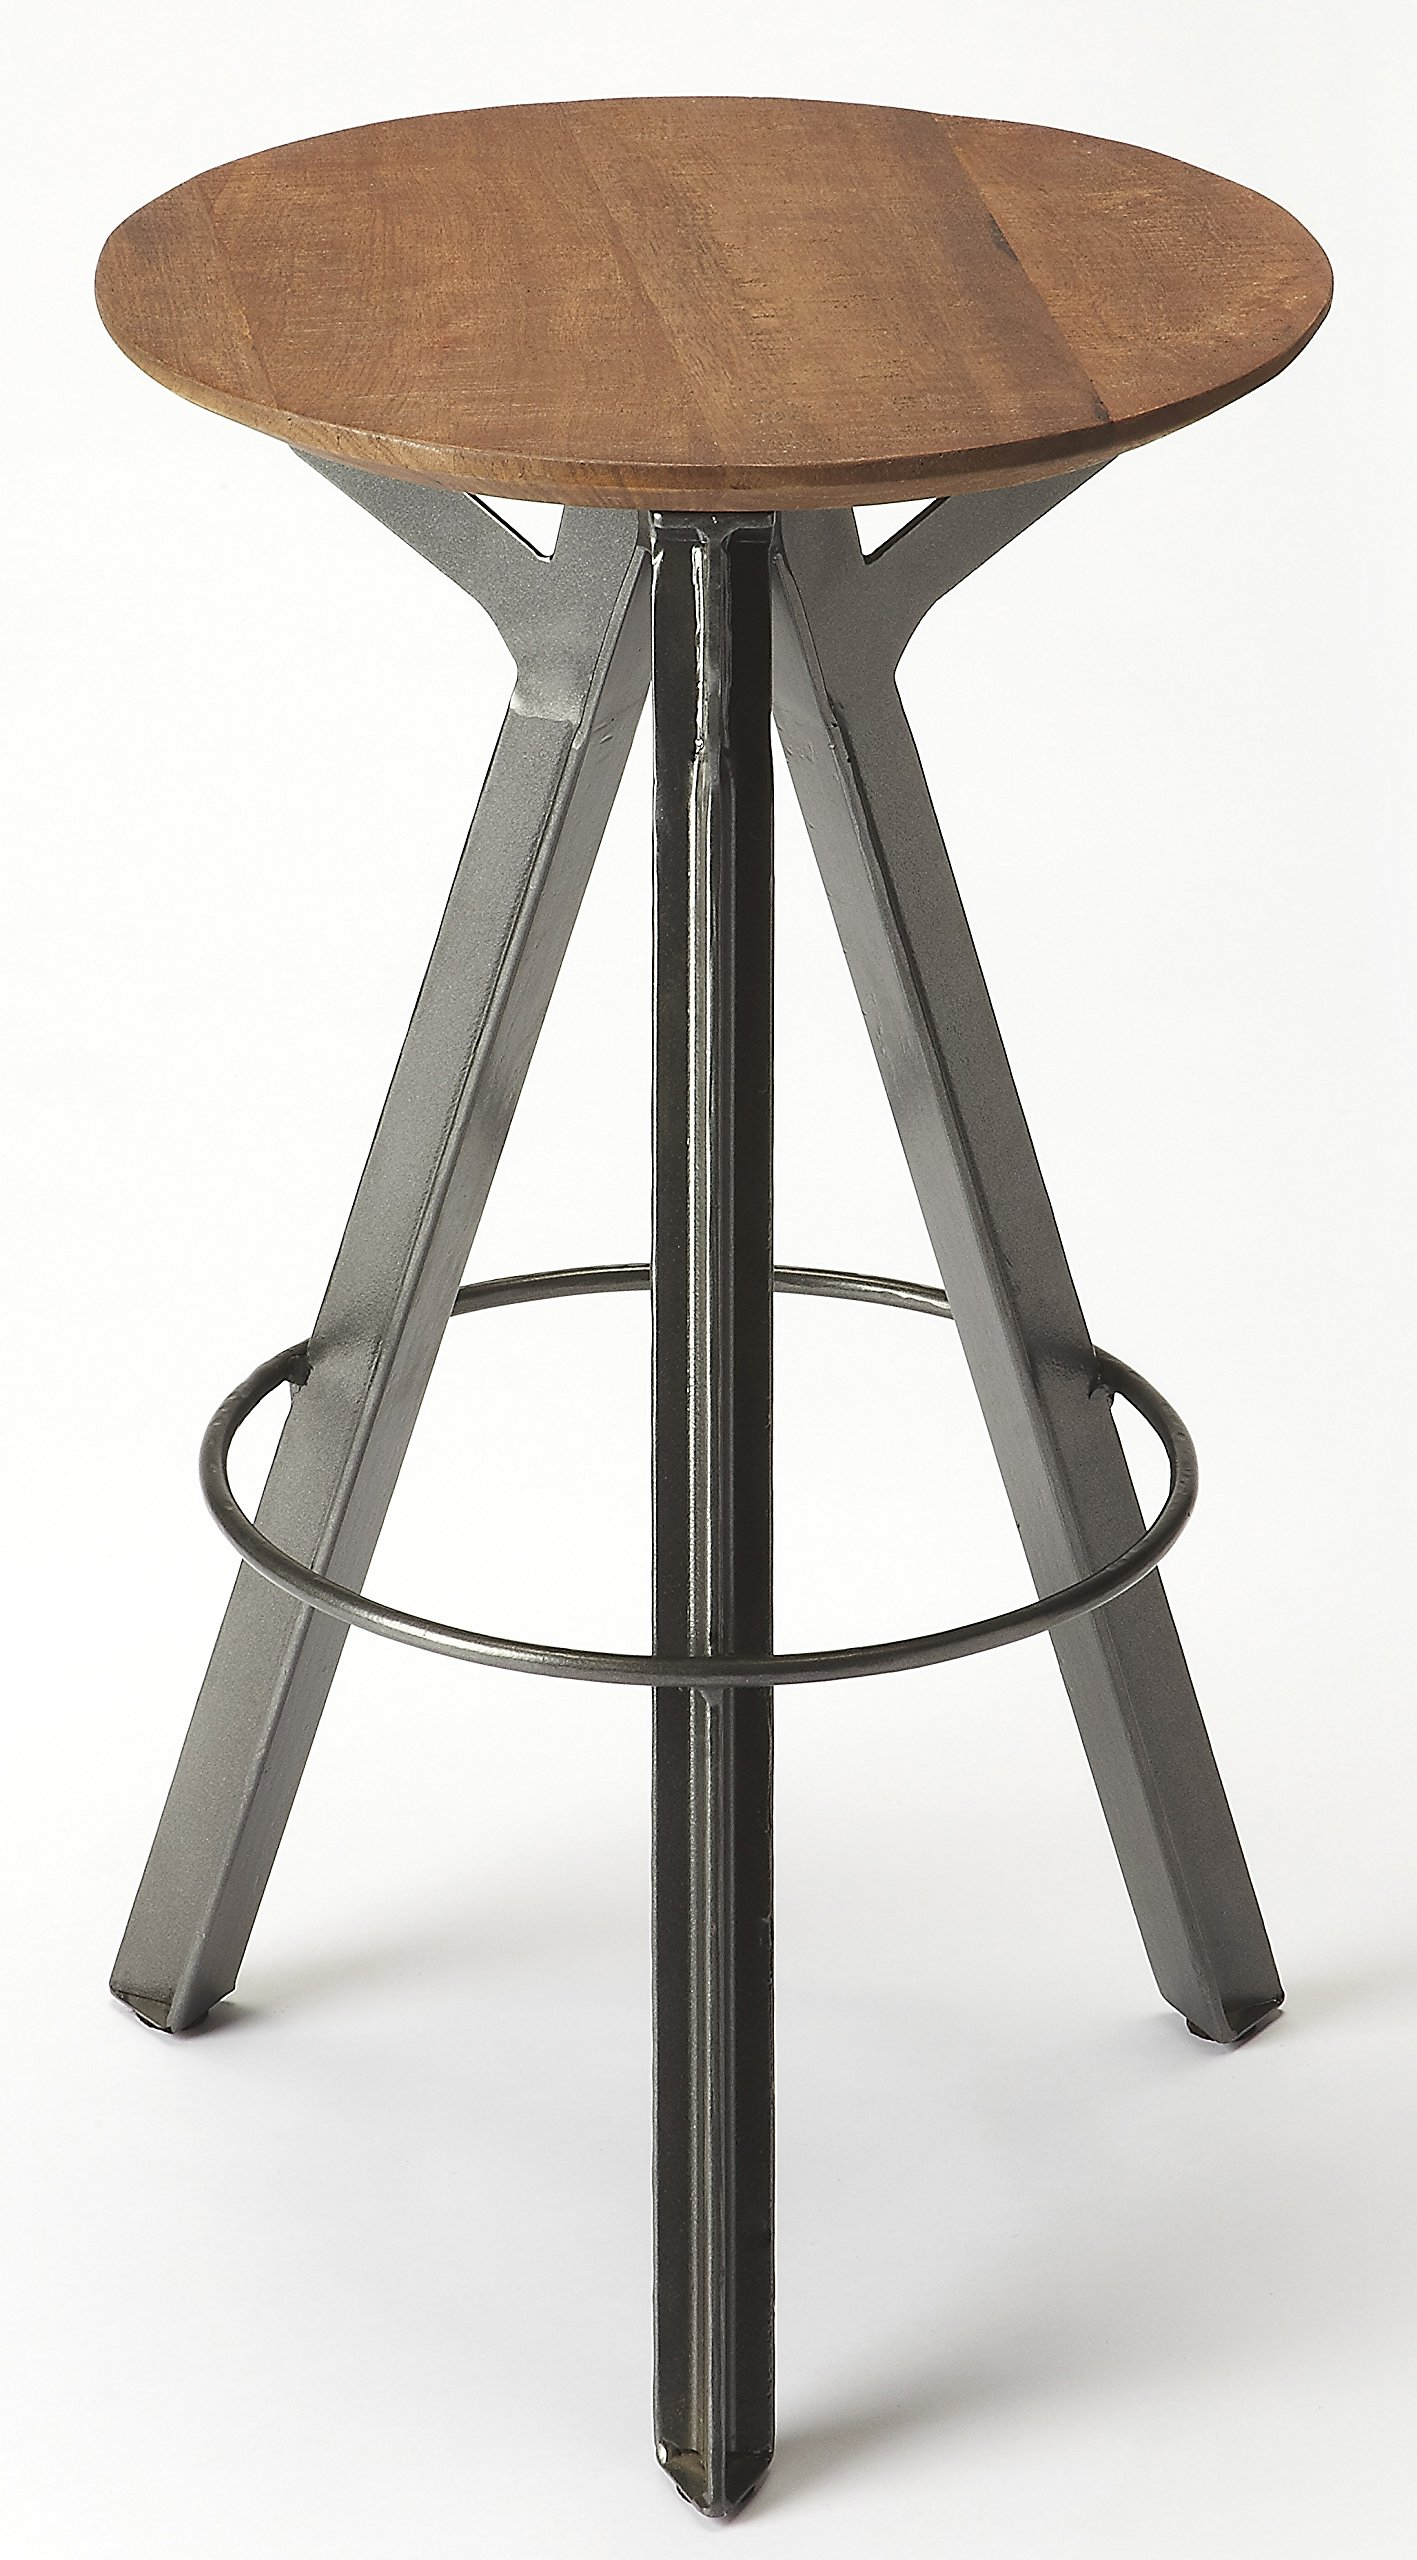 Allegheny Bar Stool in Distressed  Finish 730903